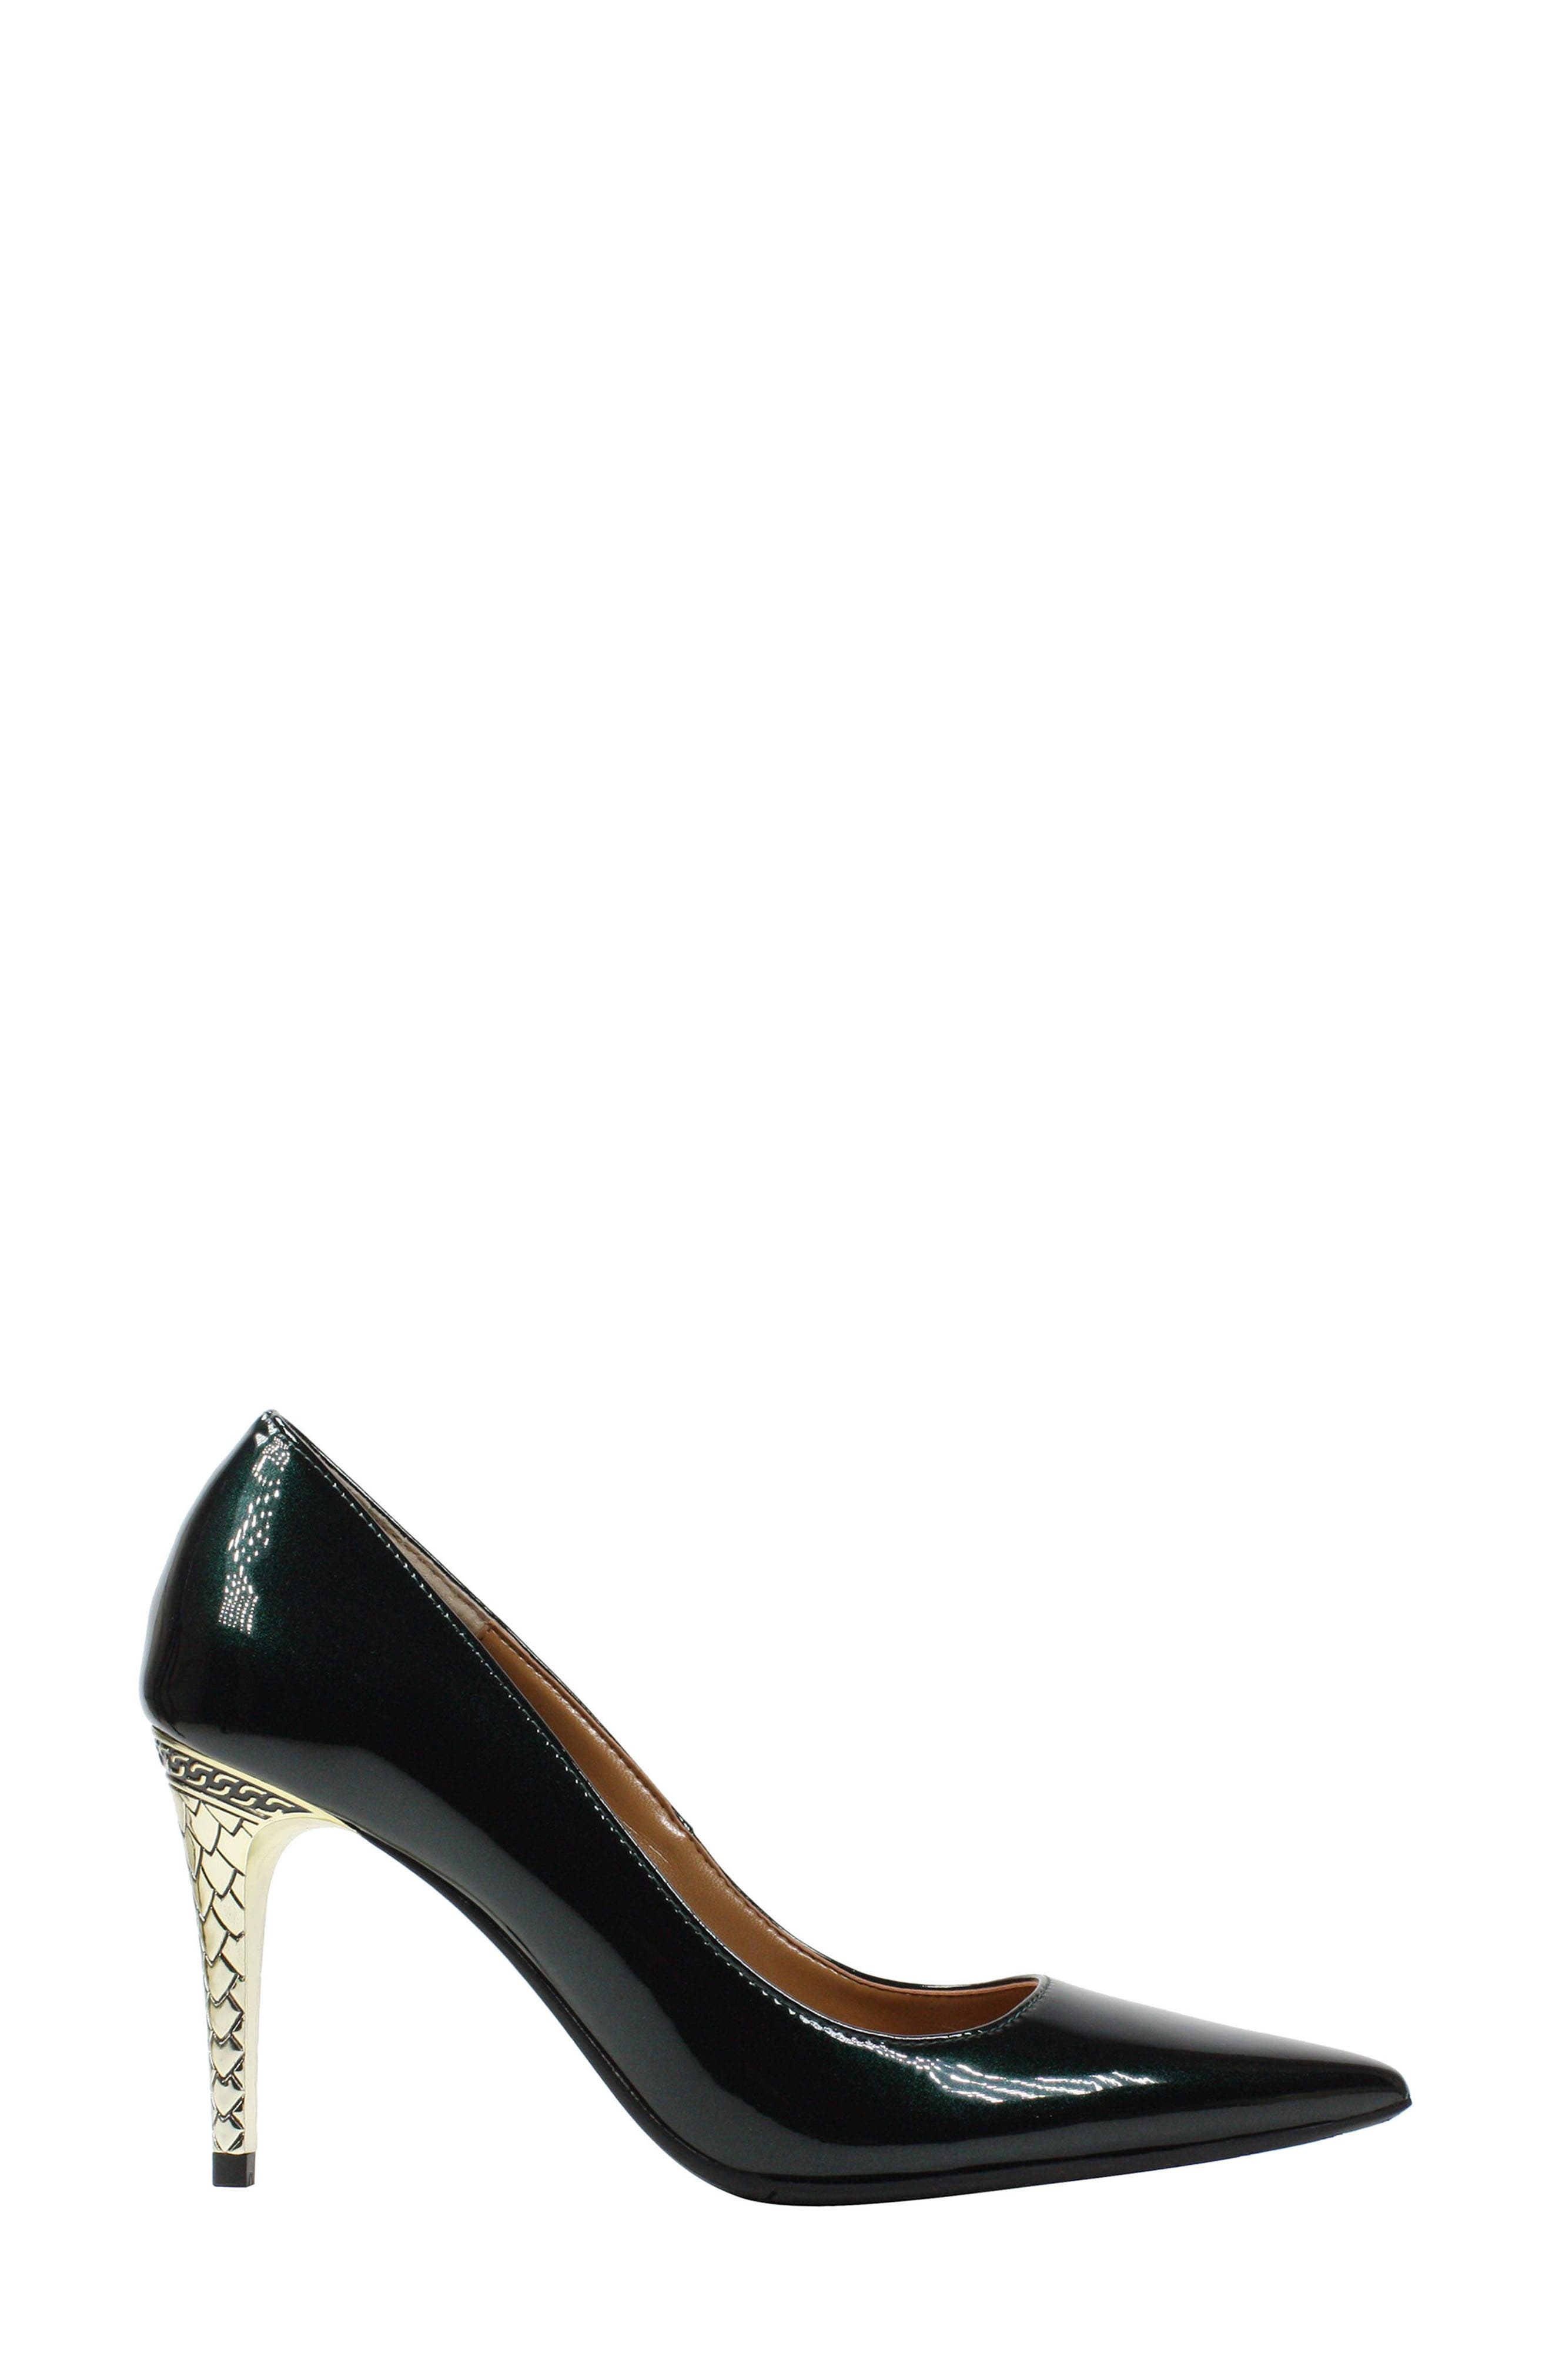 Alternate Image 3  - J. Reneé 'Maressa' Pointy Toe Pump (Women)